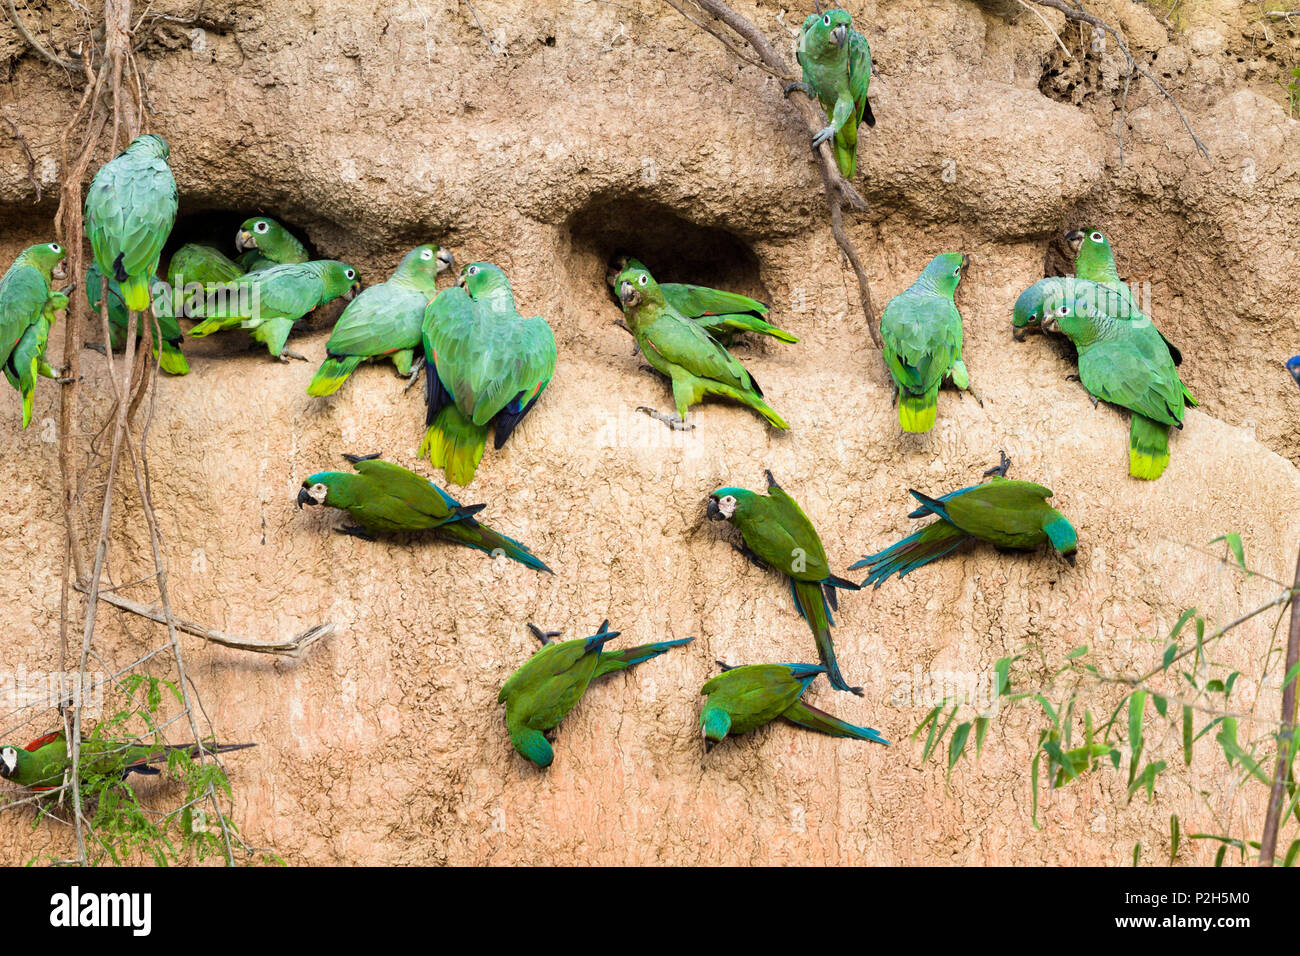 parrots at saltlick in rainforest at Tambopata river, Tambopata National Reserve, Peru, South America - Stock Image